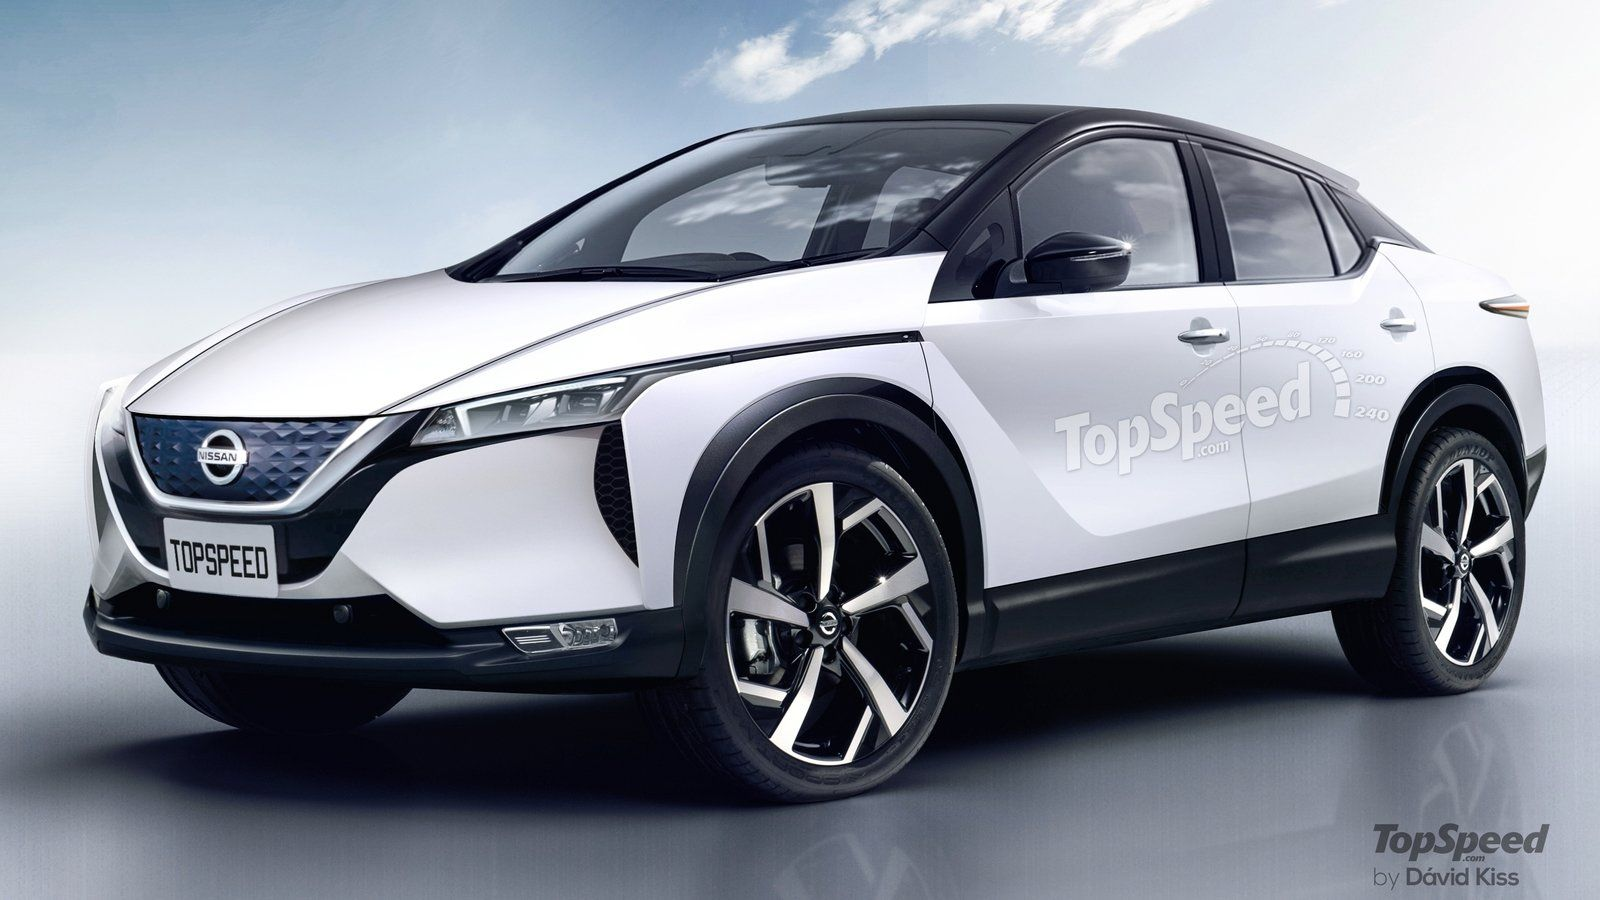 2020 Nissan Imx A Fully Electric Premium Crossover Nissan Nissan Leaf Suv